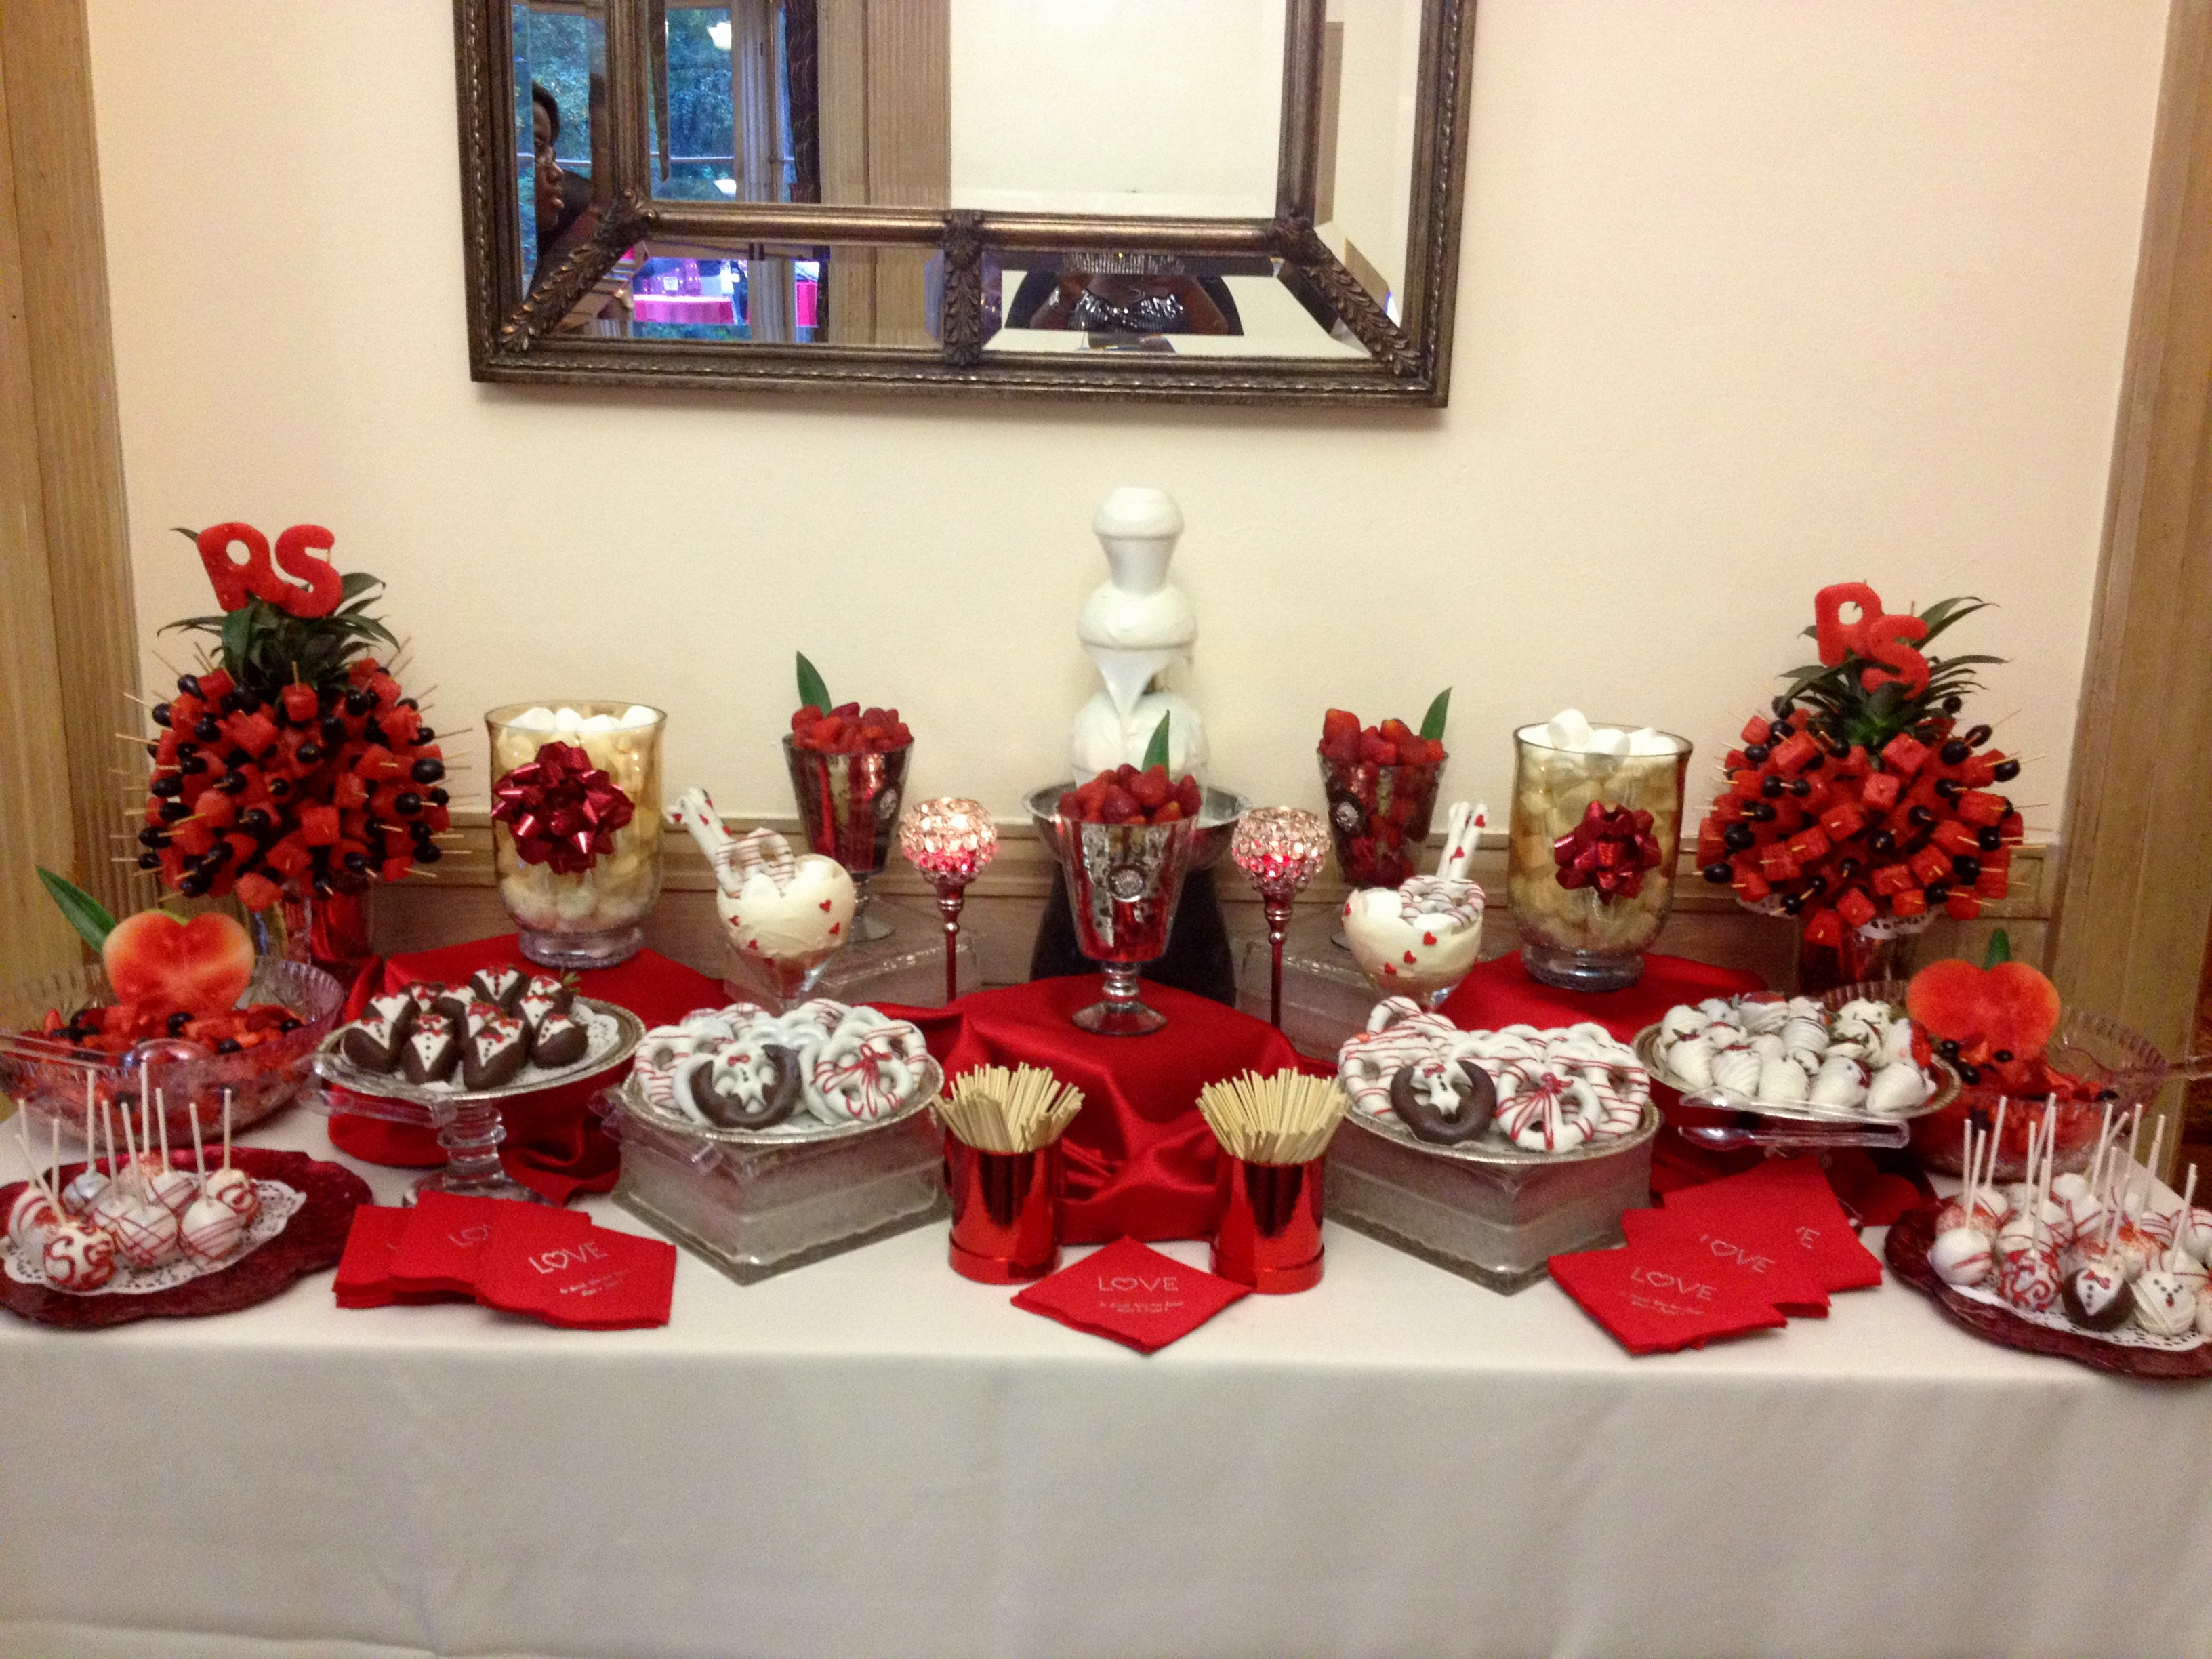 Fruit & chocolate displays